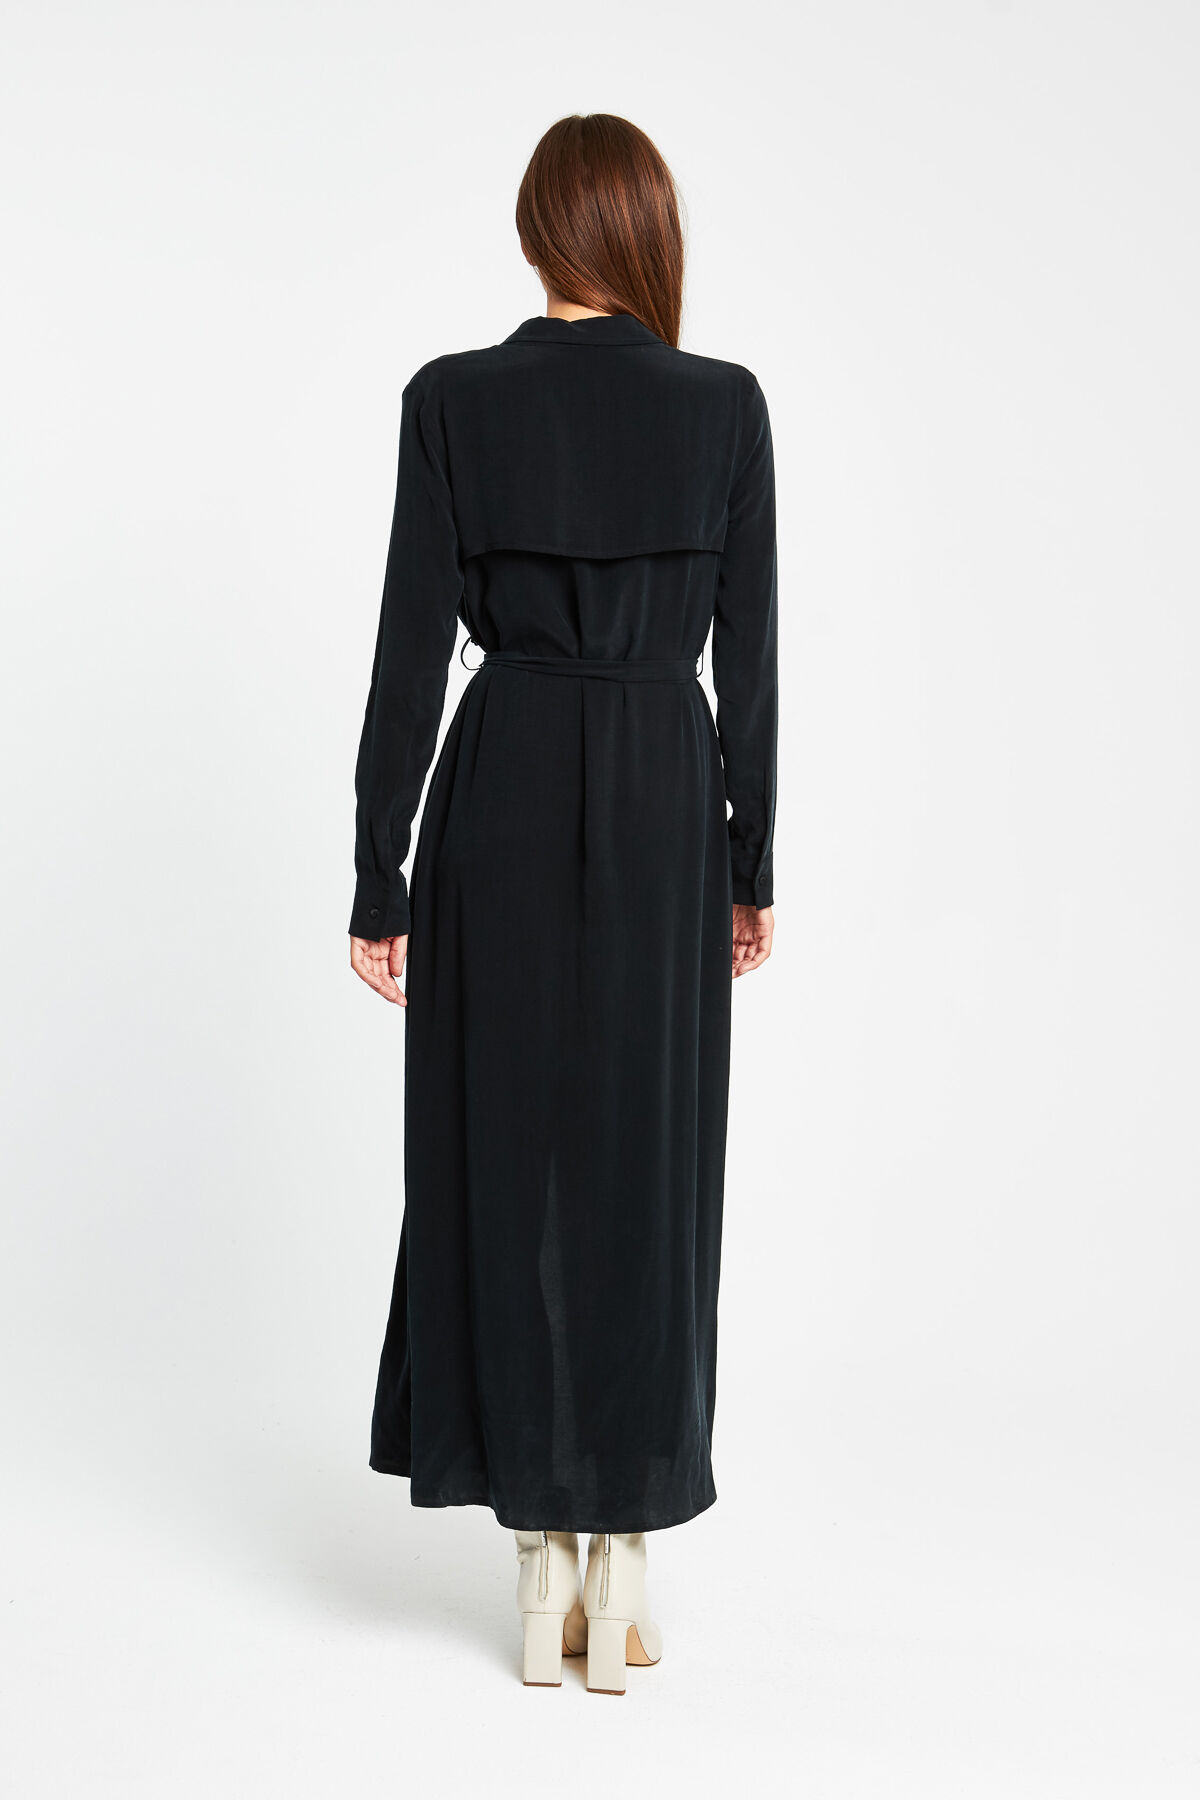 HYOKO DRESS EC